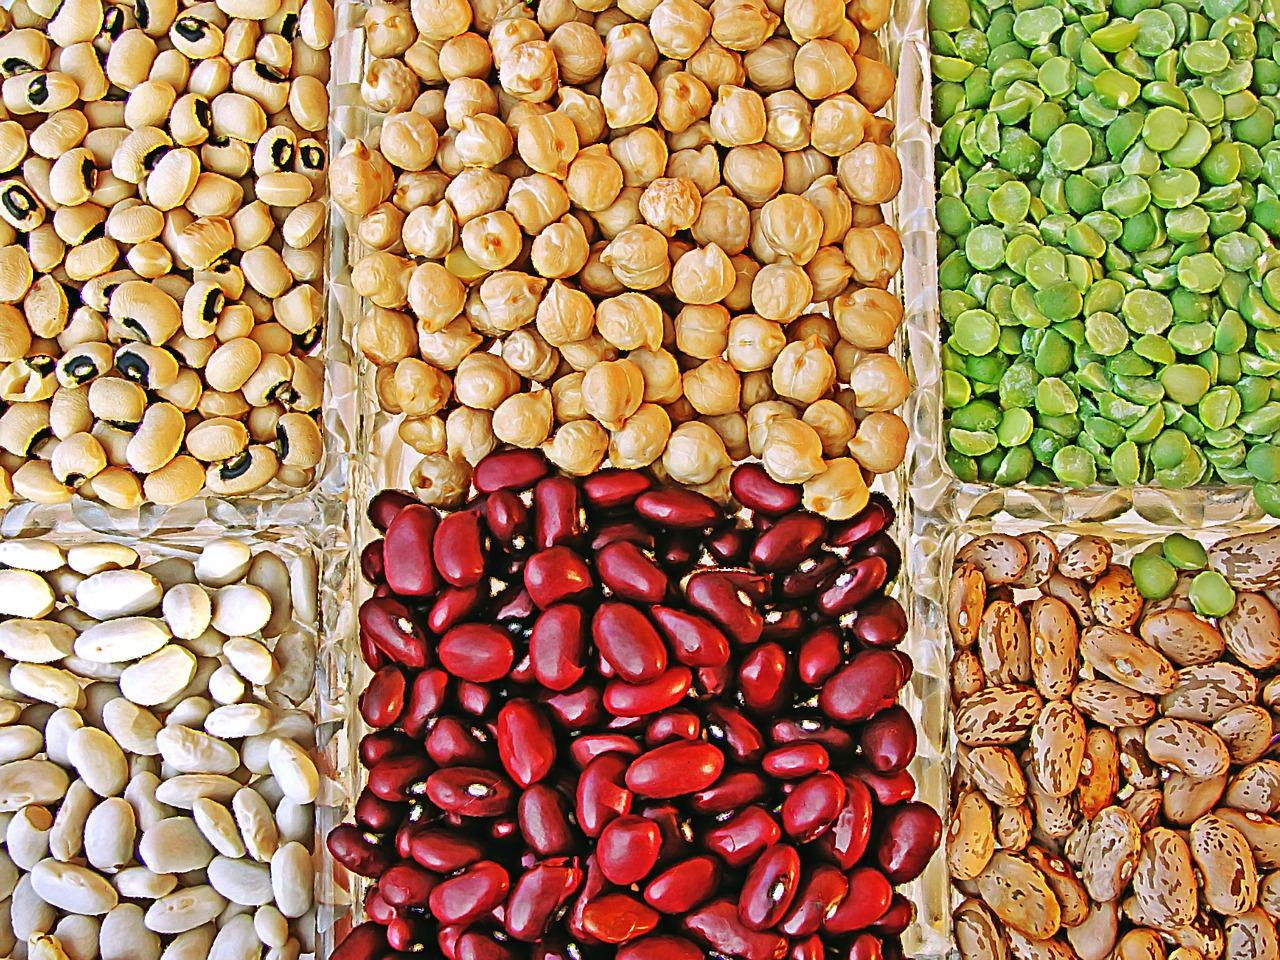 Pulses Recipes: Cooking With Beans, Peas, Lentils, Chickpeas